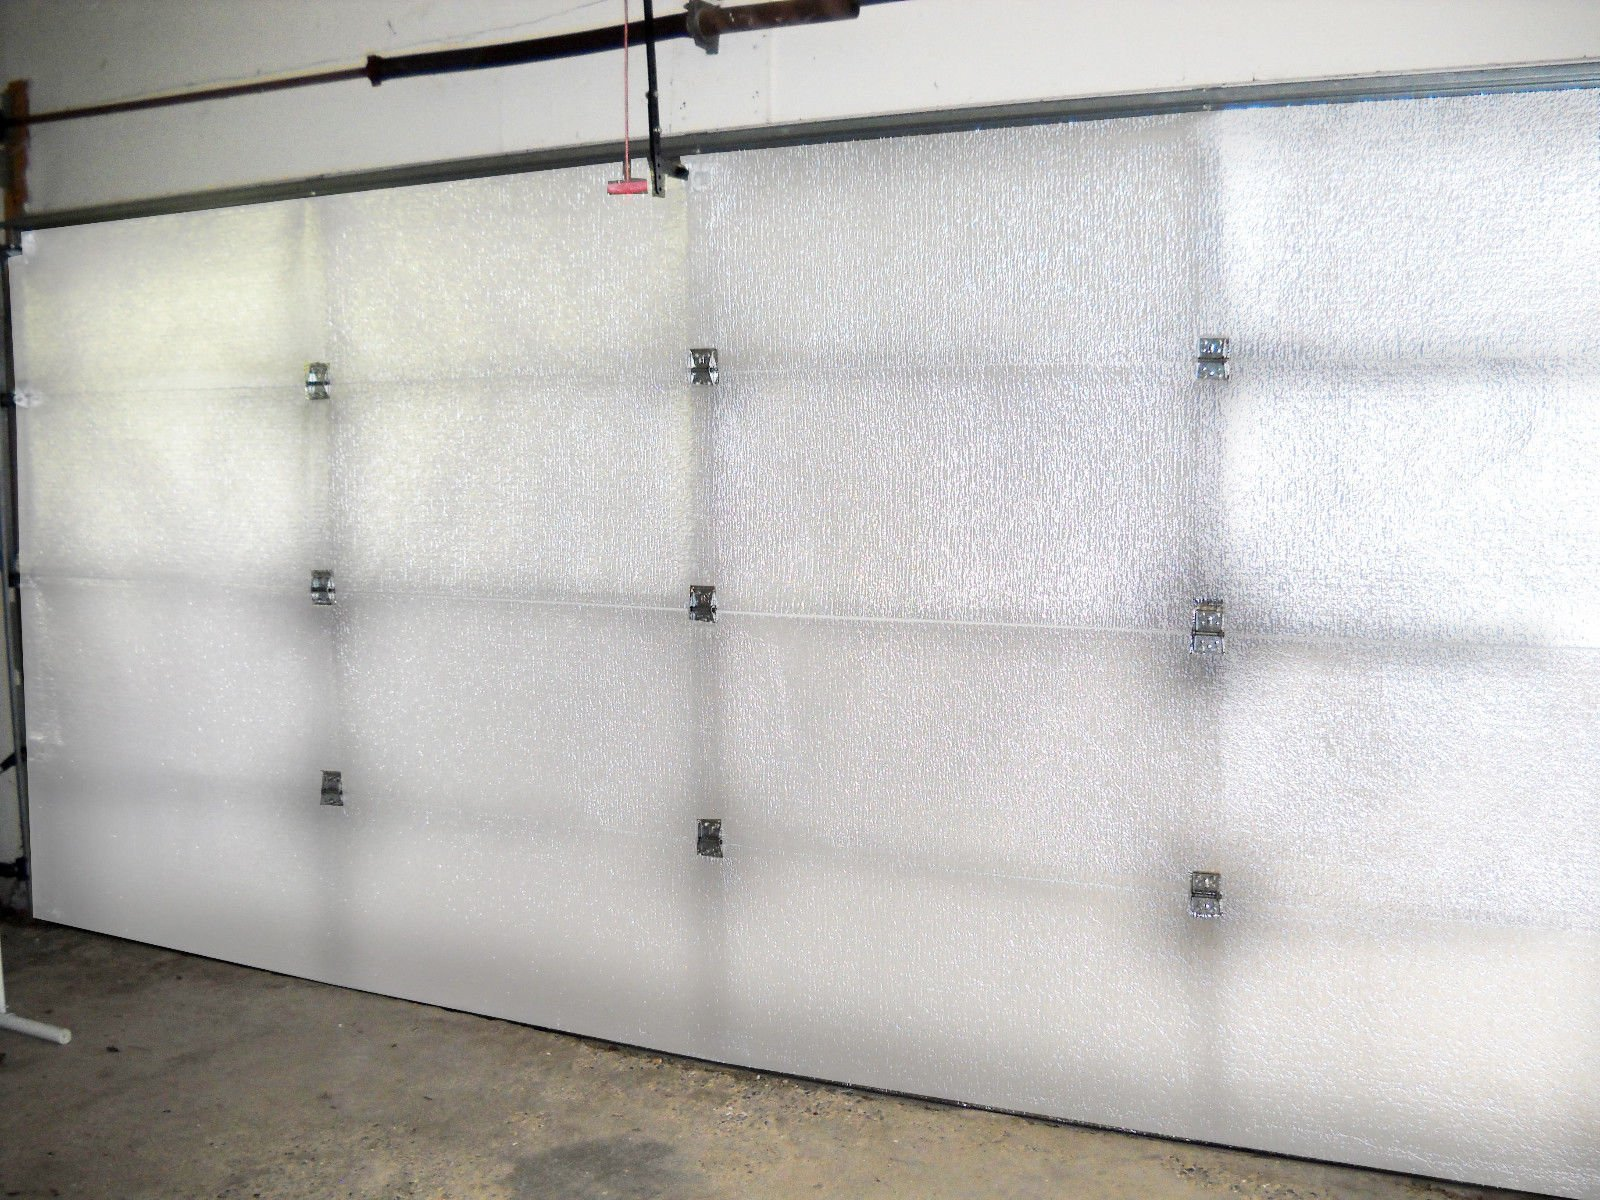 USEP MWS One Car Garage Door(9'x7') Insulation Kit (White Interior Finish):Includes MWS Reflective Foam Core Insulation (70 sq ft), Razor Knife, Squeegee, Double Adhesive Tape.